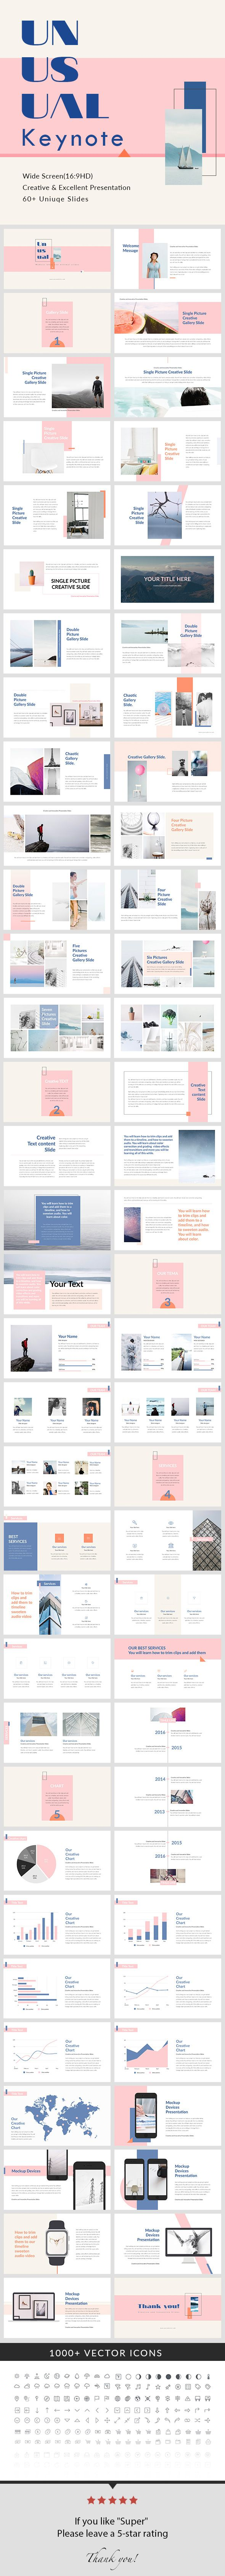 Unusual - Keynote Presentation Template - Creative Keynote Templates ...